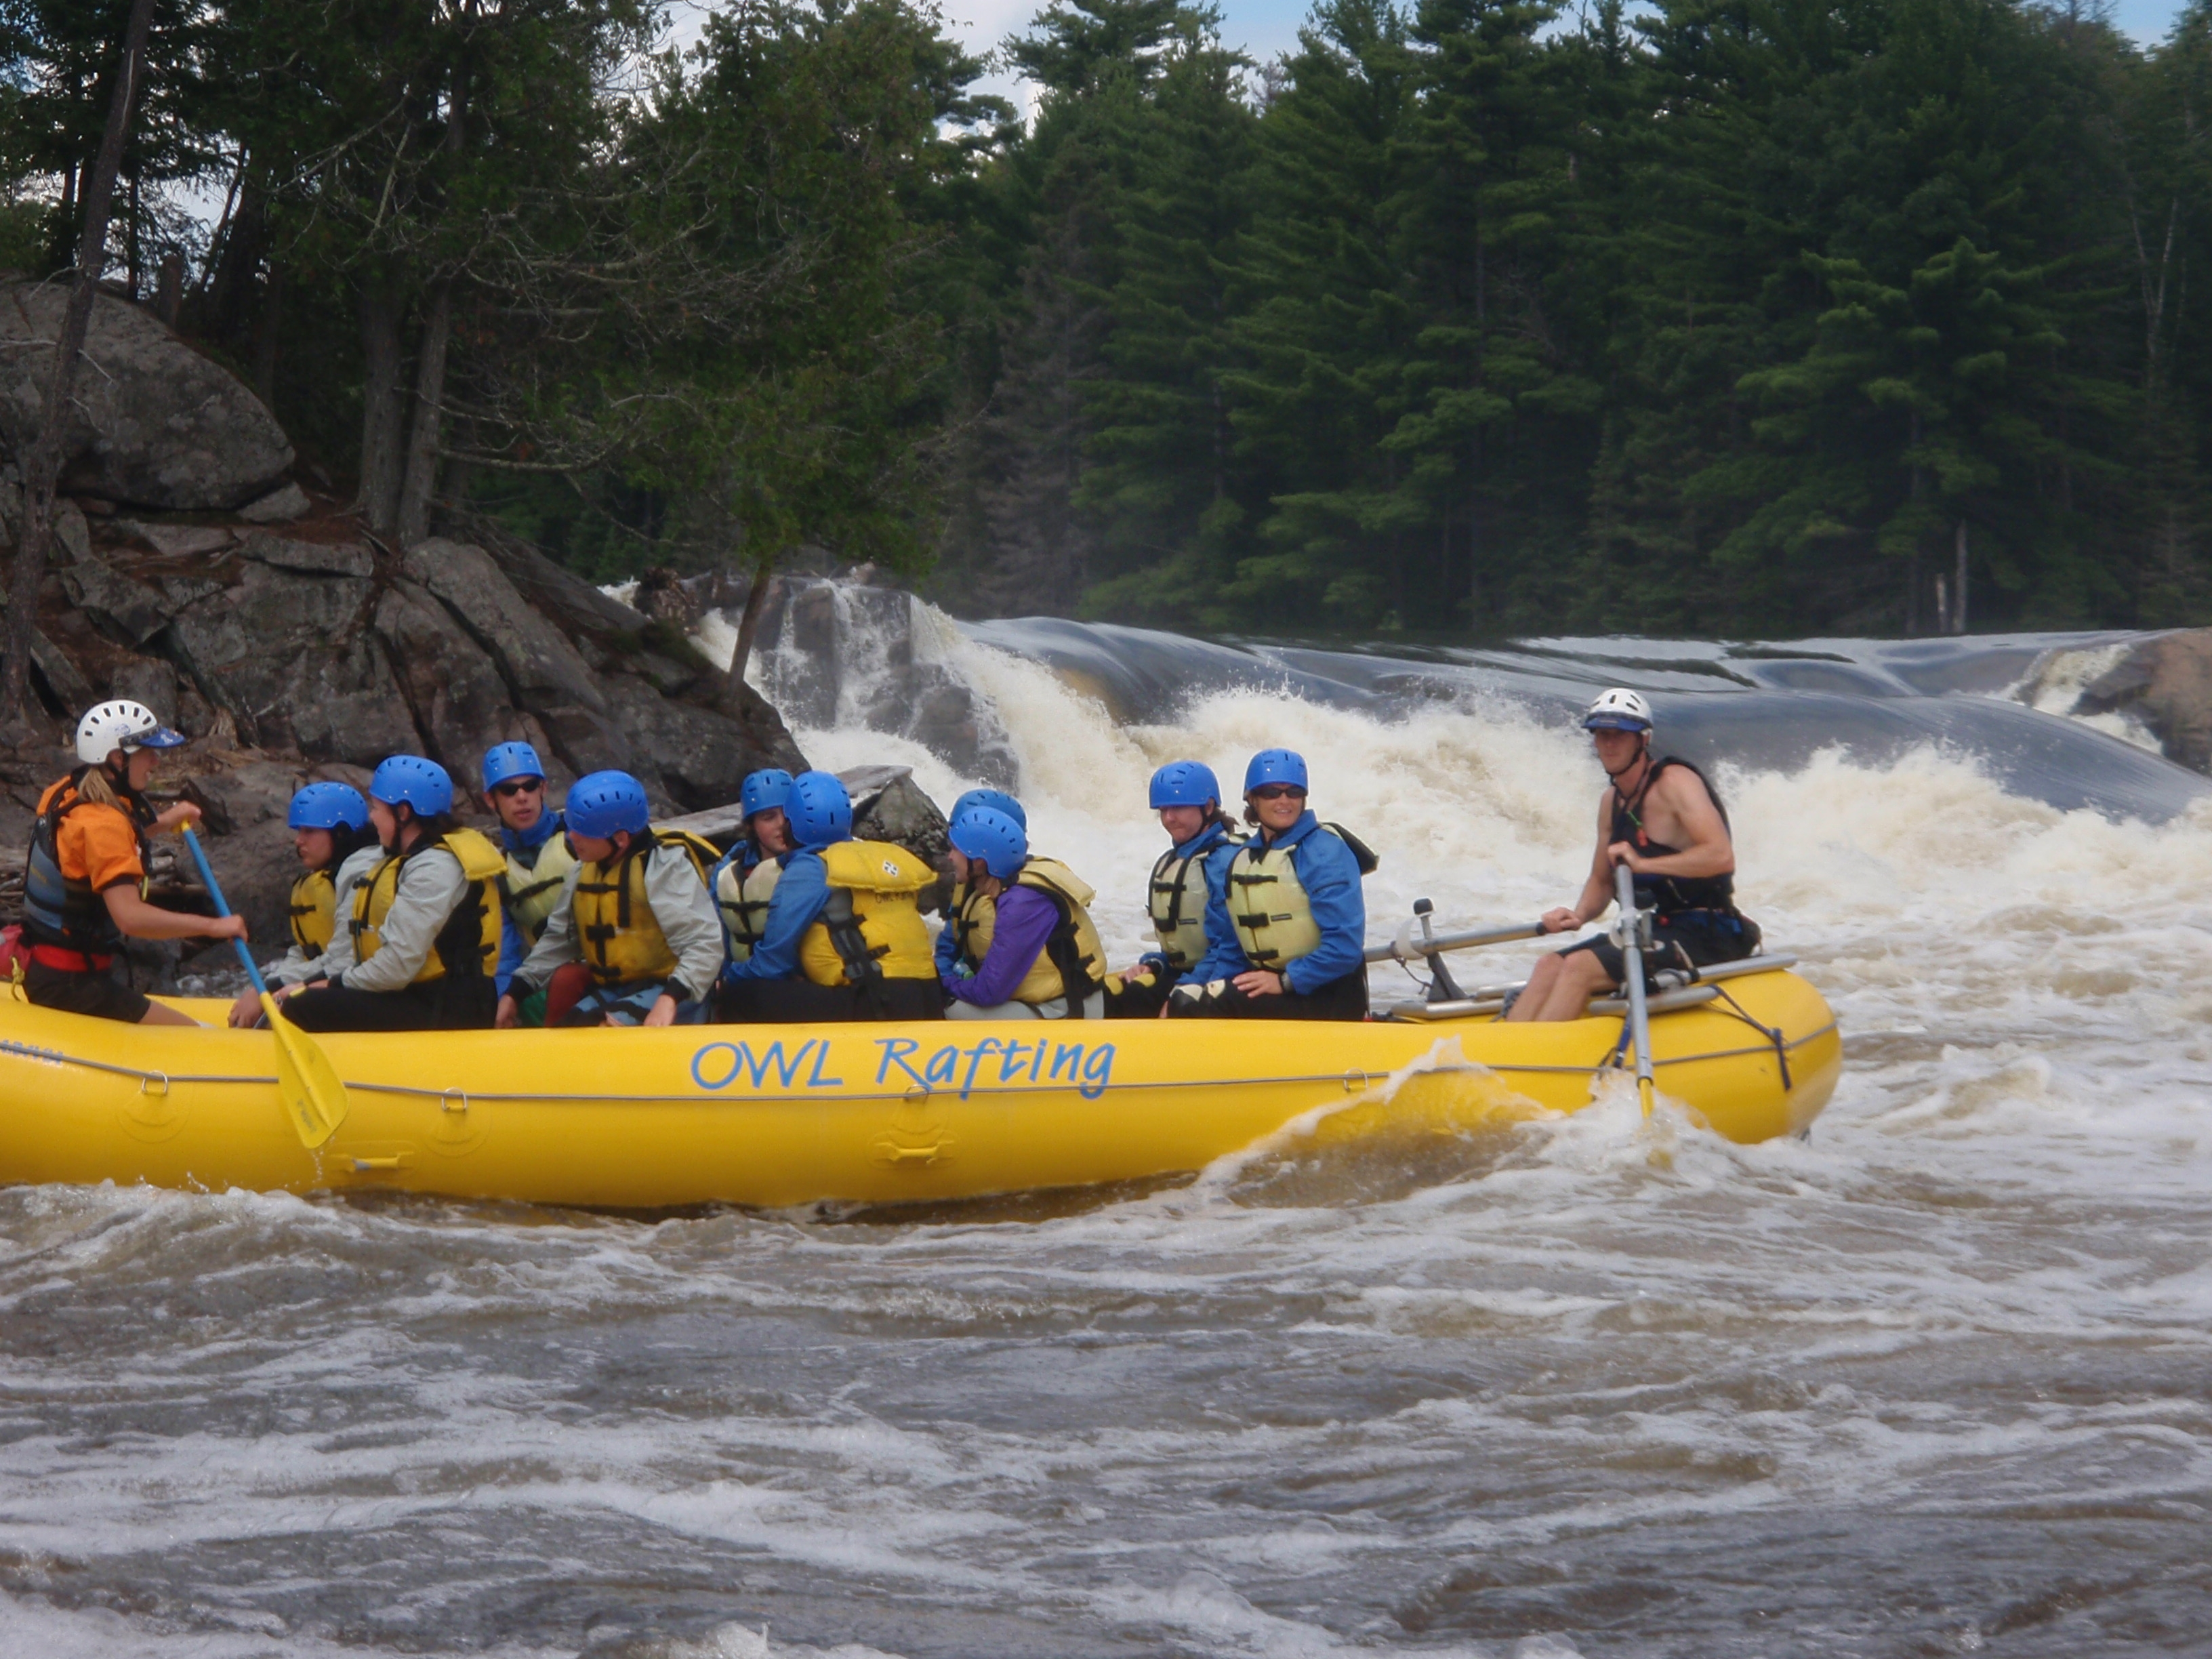 White water rafting on the Ottawa River with Owl Rafting.